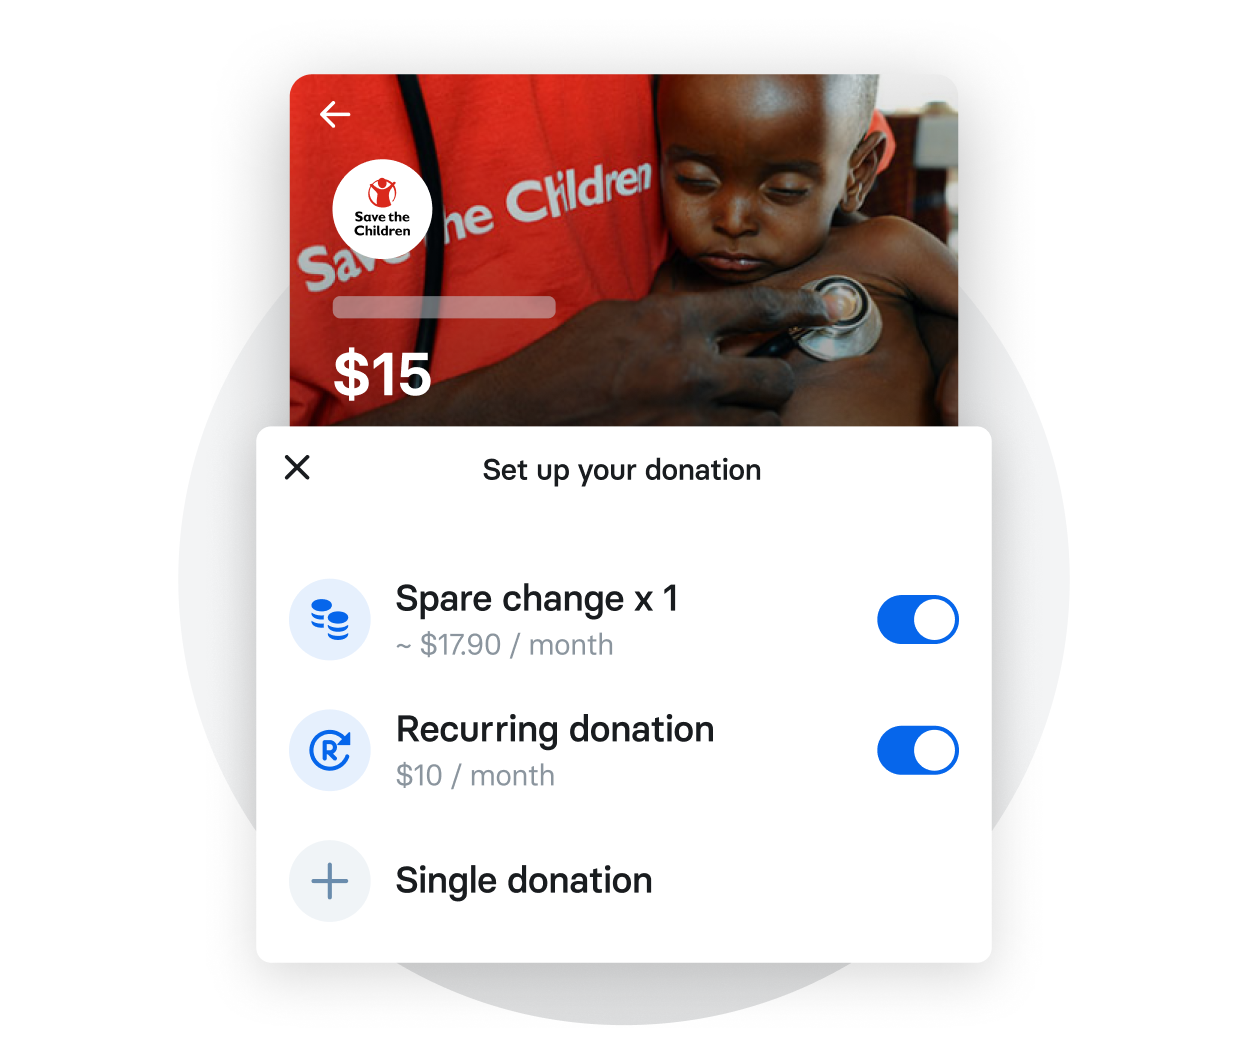 You choose how to make 